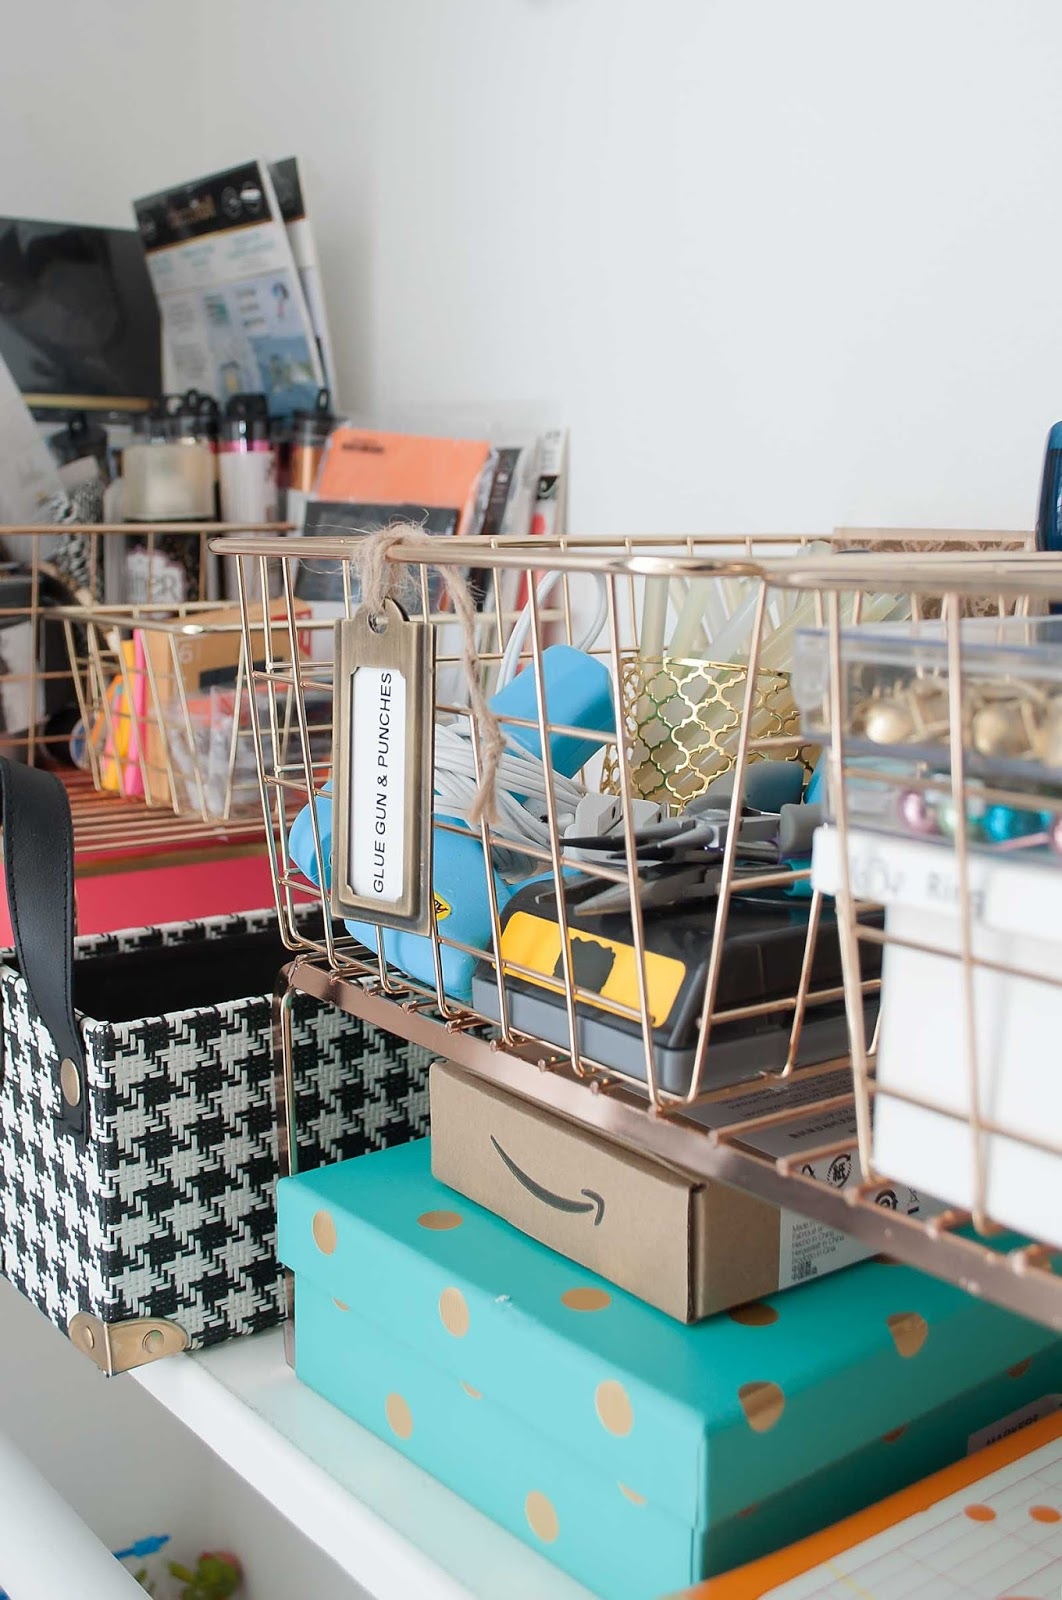 Gold wire baskets and gift tags help organize a home office with craft supplies.